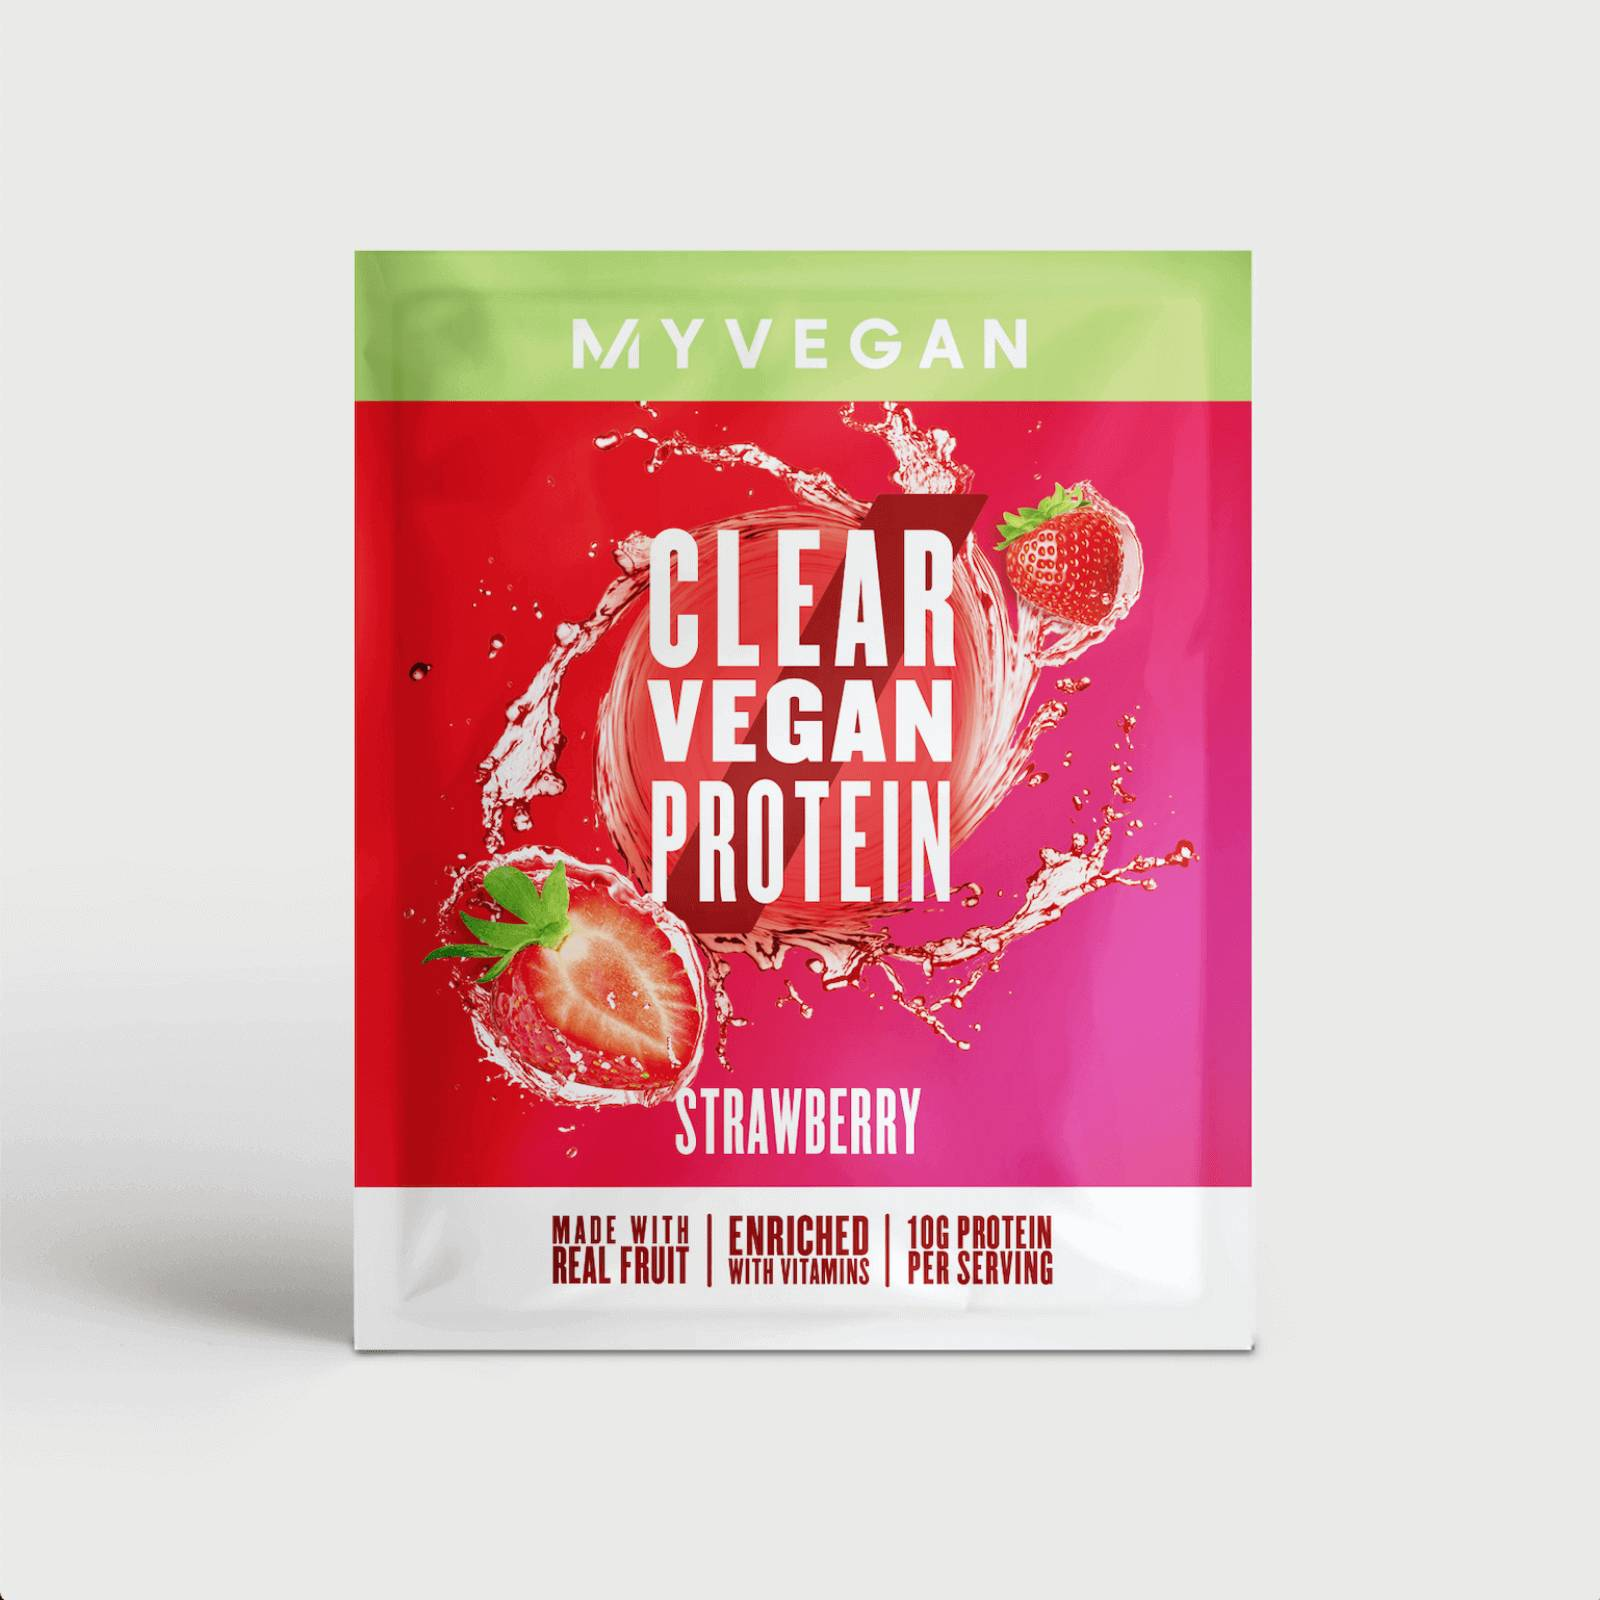 Myvegan Clear Vegan Protein (Sample) - 16g - Strawberry